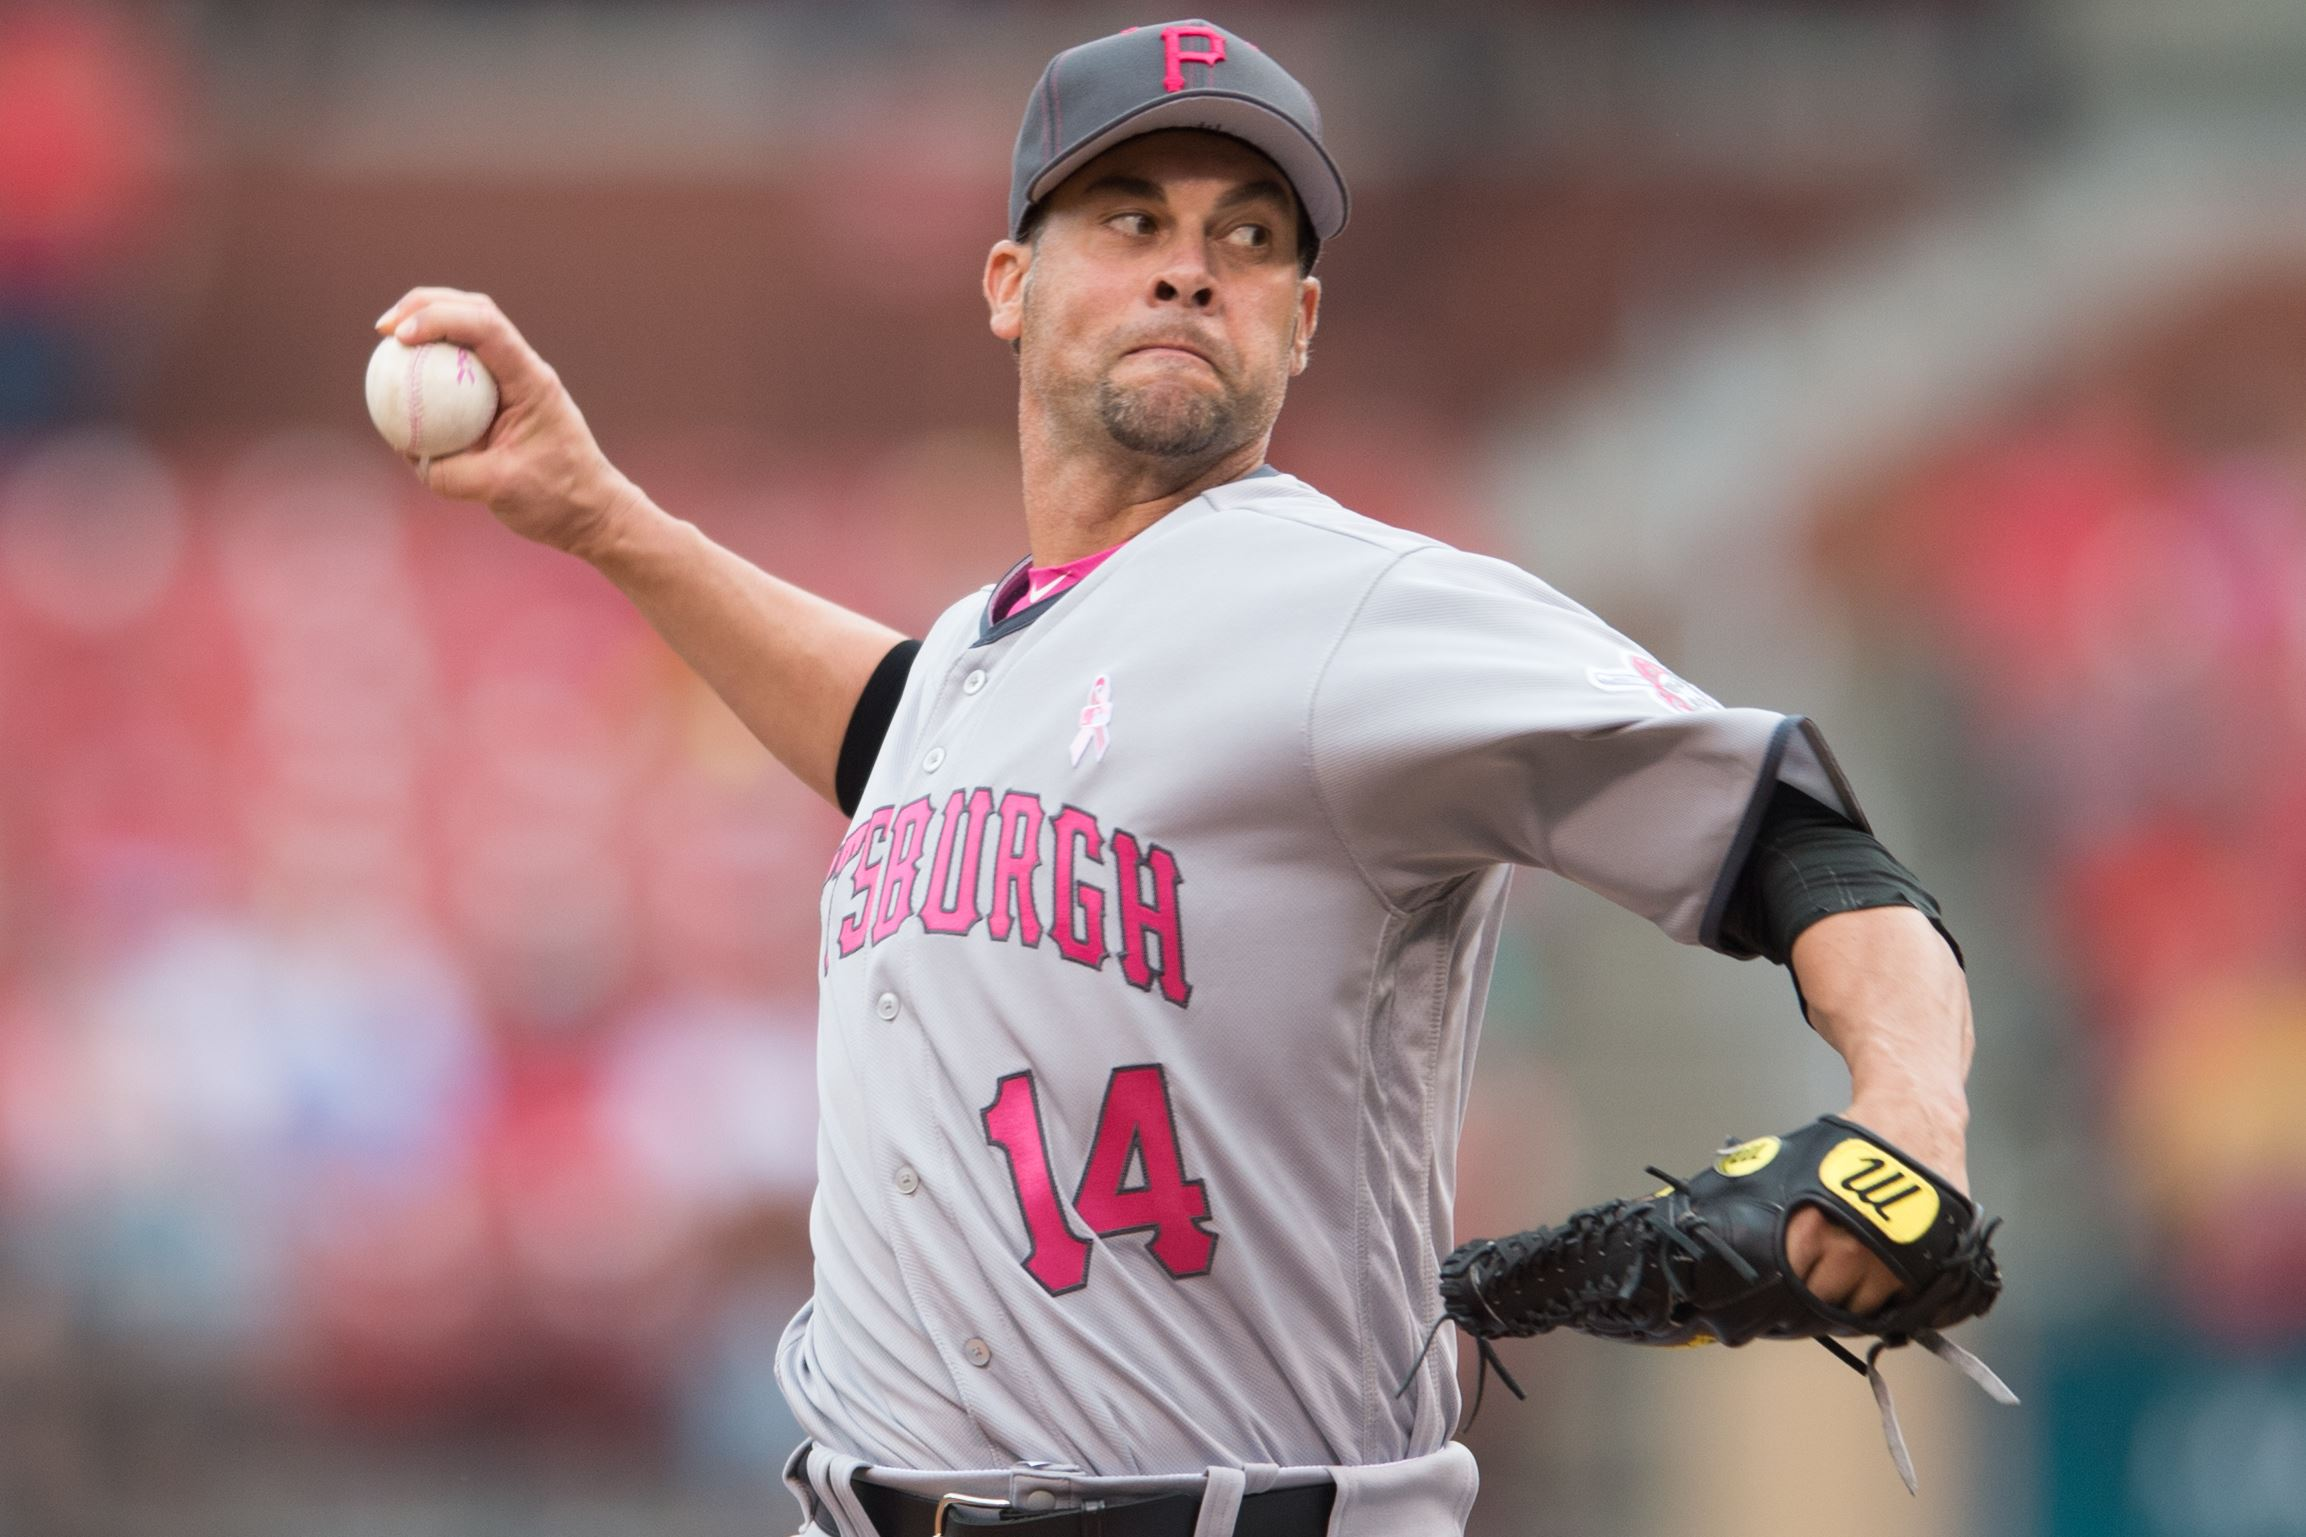 Pirates notebook: Vogelsong feeling good after most recent rehab start